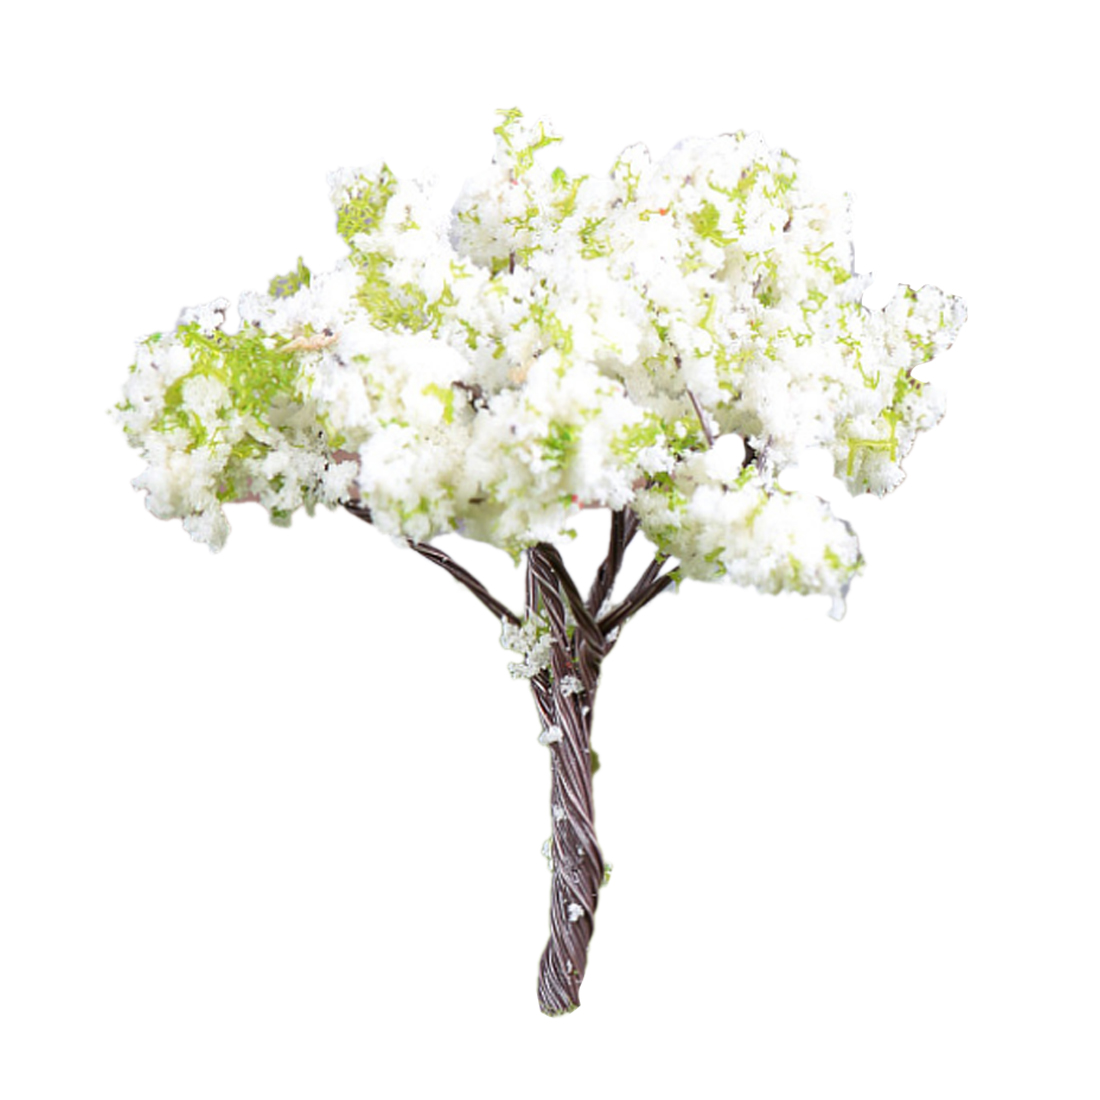 20/50/100 Pcs 6.9cm HO 1:85 Scale Pear Tree Model Railroad Architecture Diorama Tree For DIY Scenery Landscape